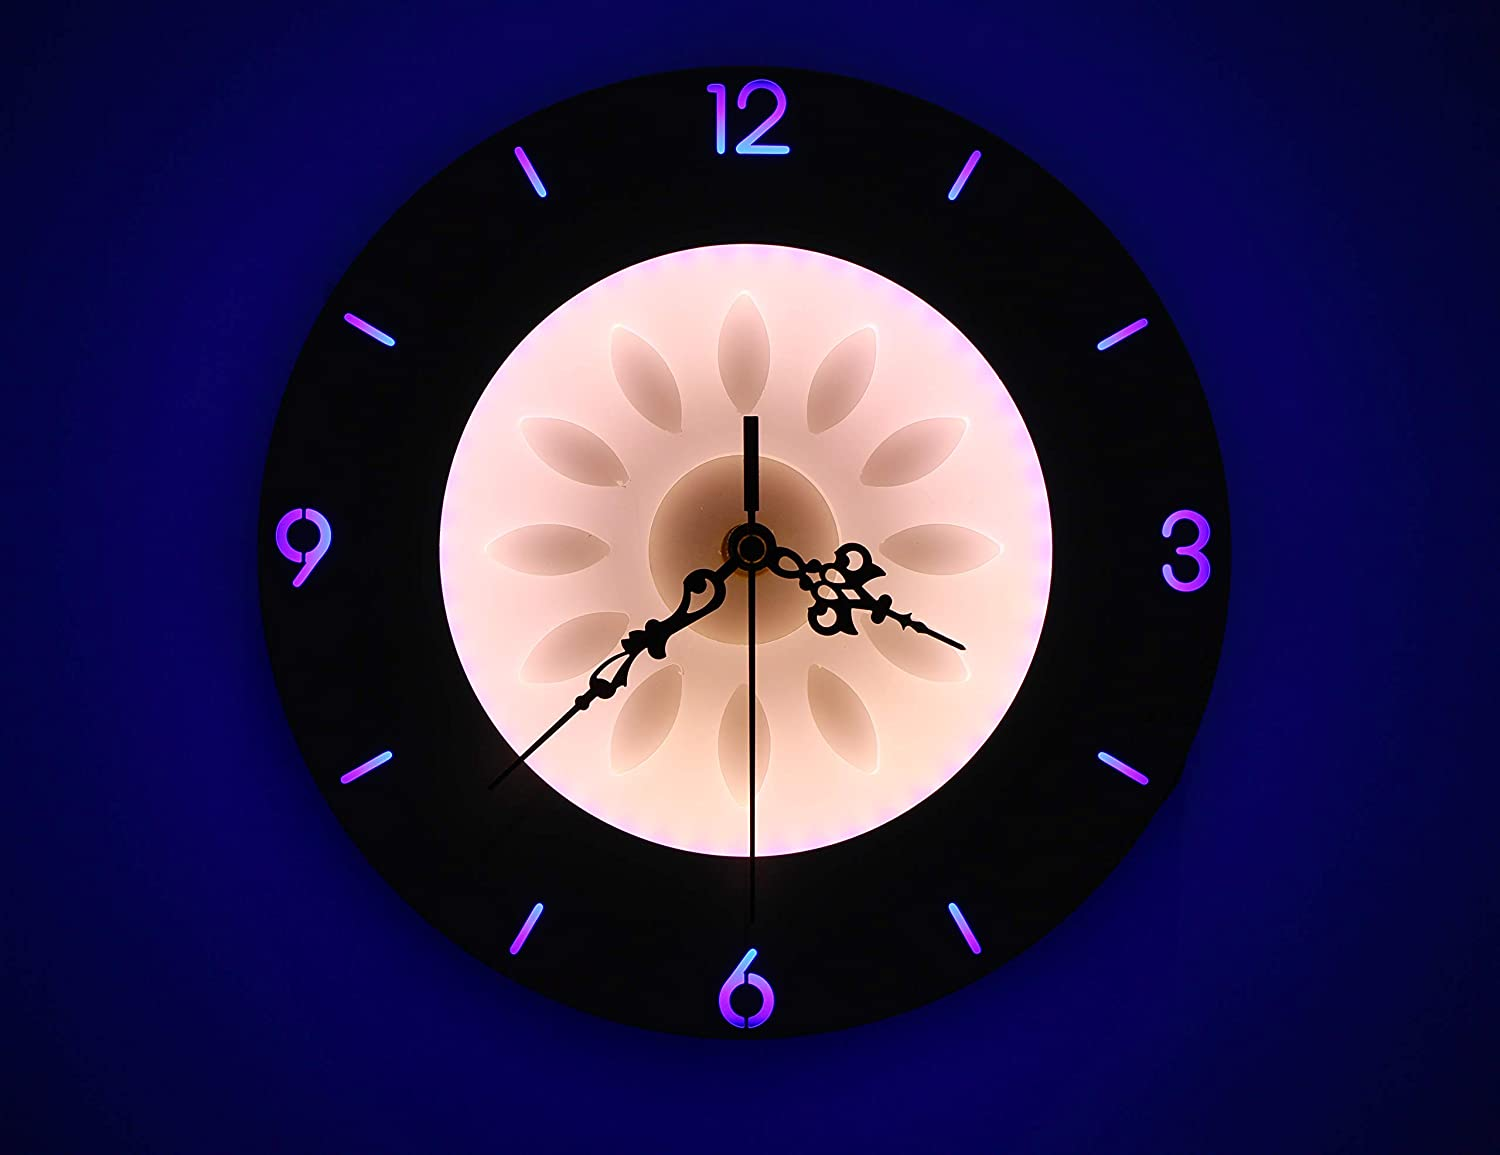 Buy Citra Led Light Wall Clock With Yellow And Blue Light Effects Online At Low Prices In India Amazon In